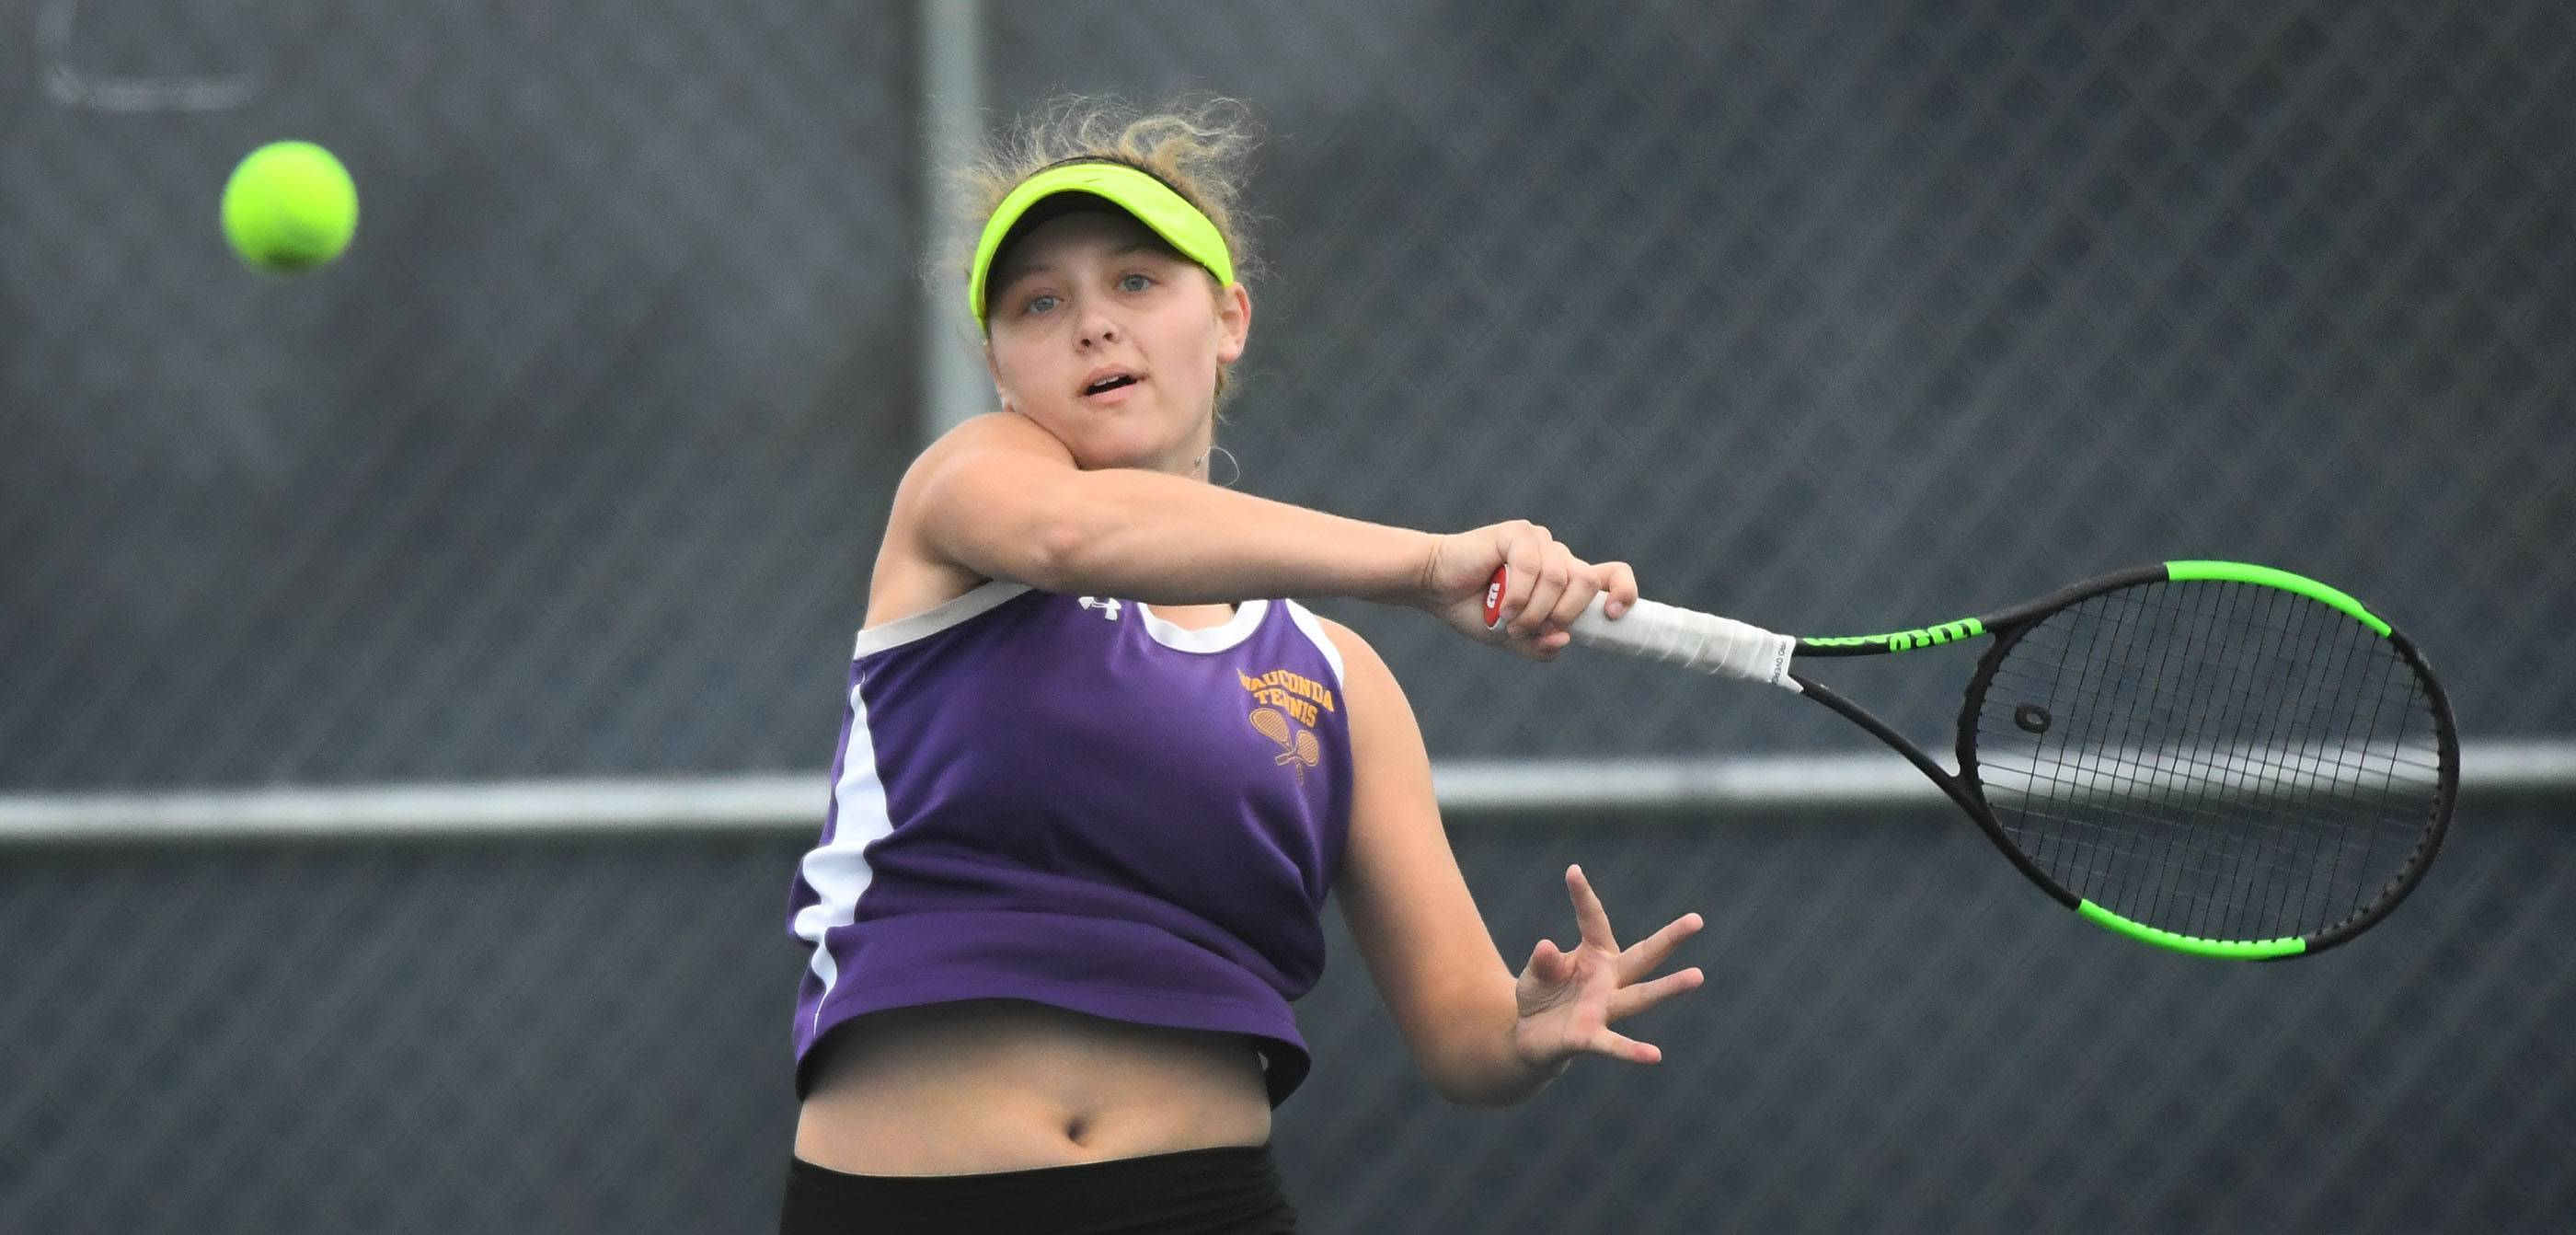 Wauconda's Sarah Hackman measures a forehand in Class 1A state semifinal play against Lakes' Megan Heuser on Saturday at Buffalo Grove High School.